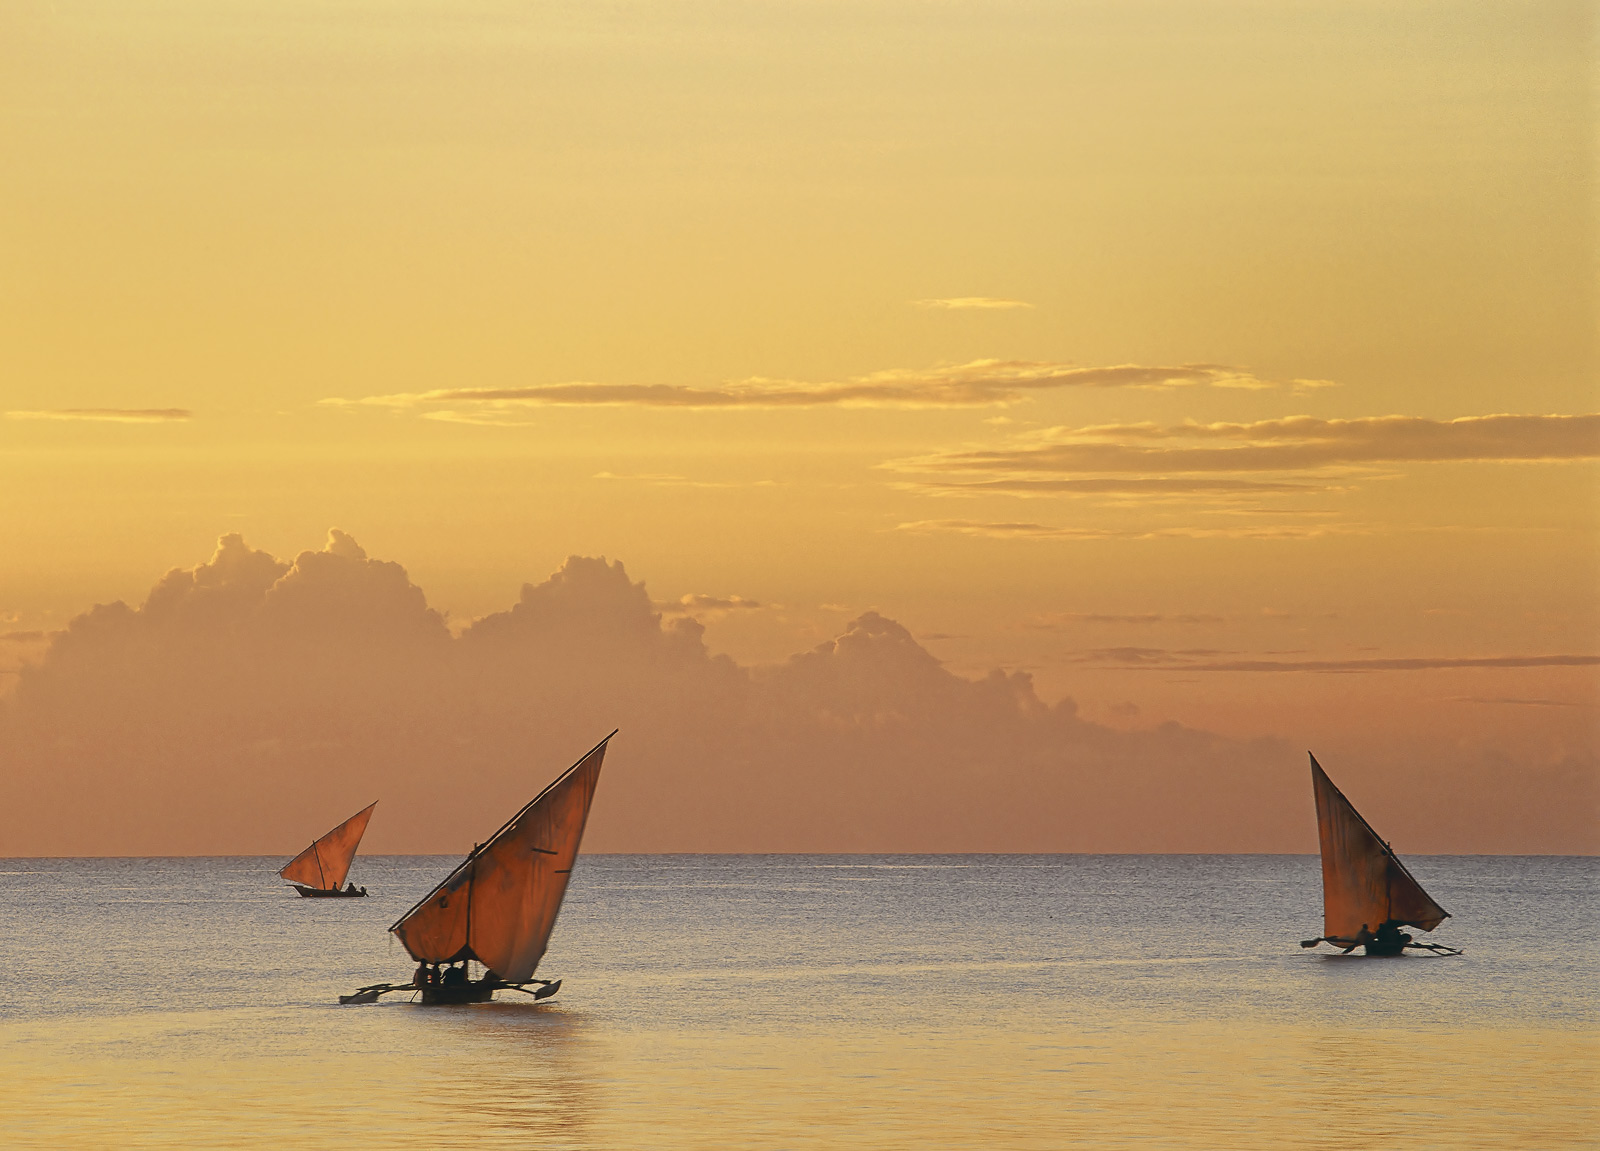 With exquisite soft yet golden post sunset light backlighting the translucent triangles of sail cloth and the drifting serenity...